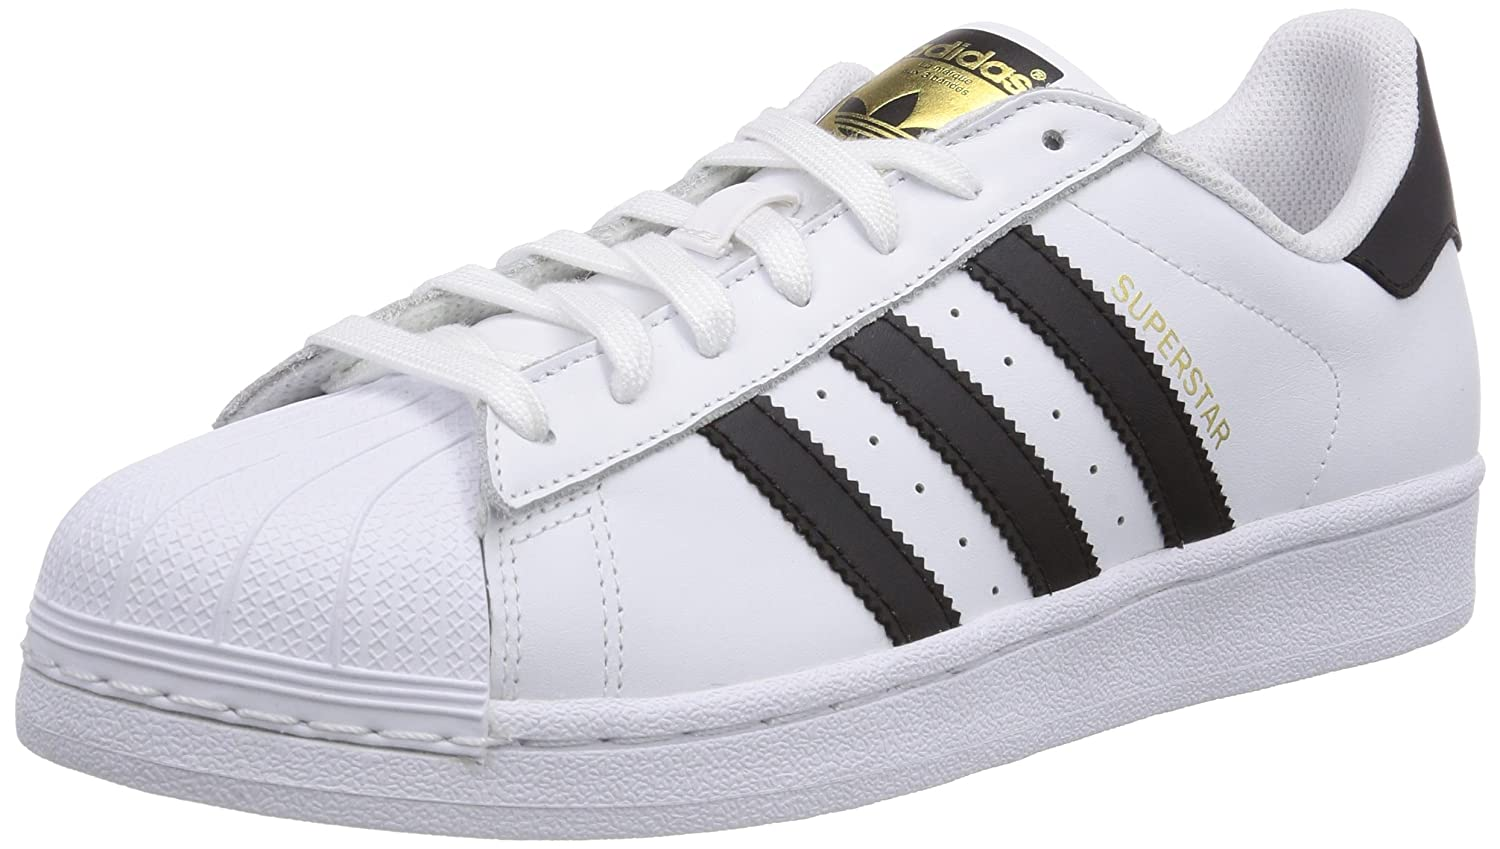 zpncu adidas Superstar Foundation, Men\'s Trainers: Amazon.co.uk: Shoes